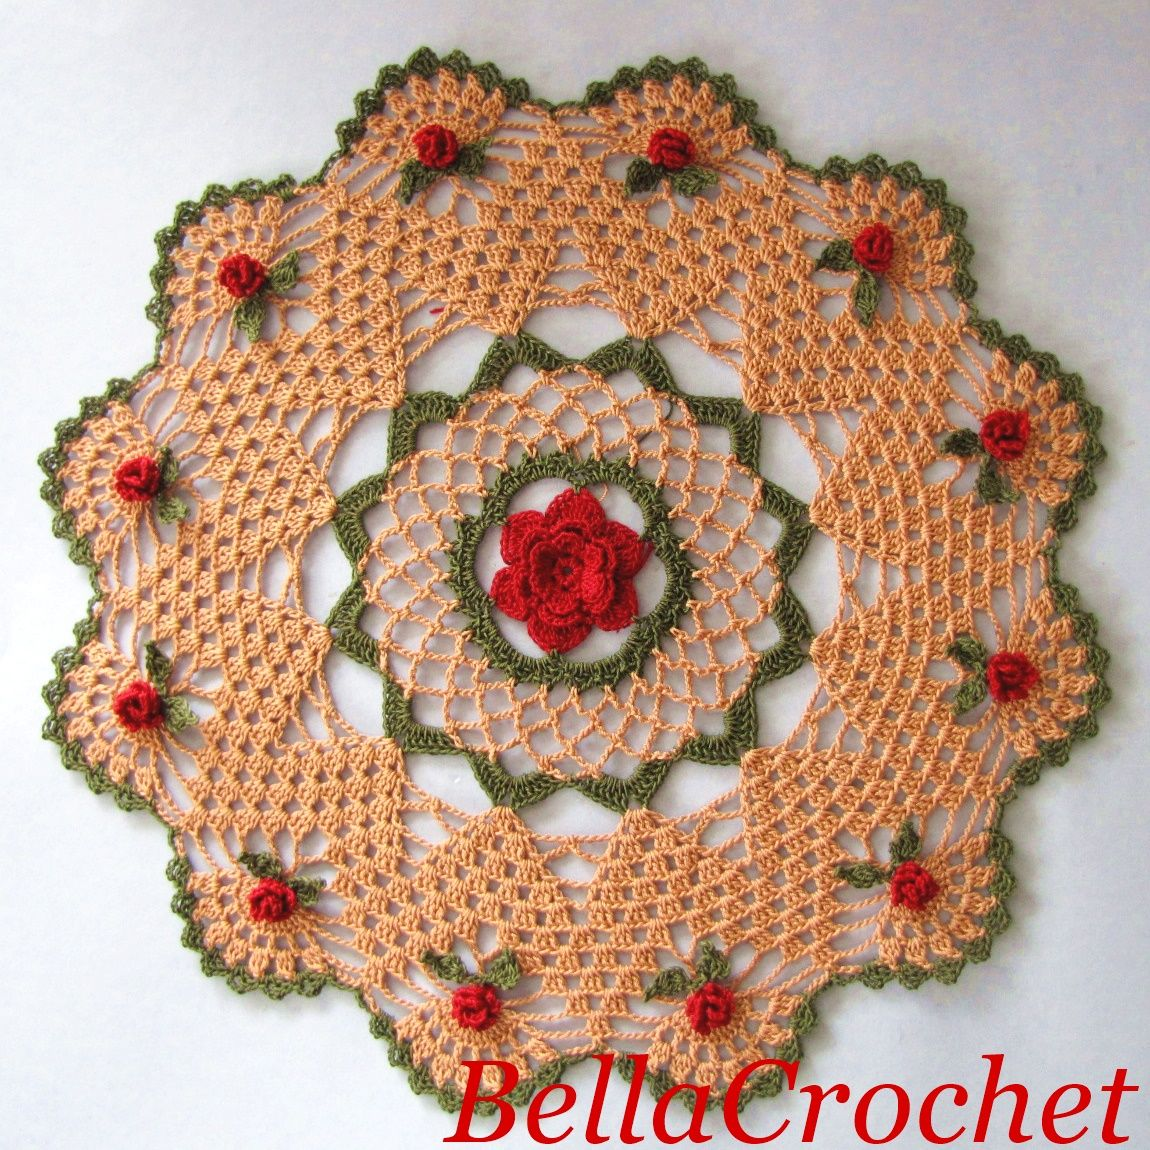 Bellacrochet mavanees roses a free crochet pattern for you bellacrochet mavanees roses a free crochet pattern for you bankloansurffo Image collections